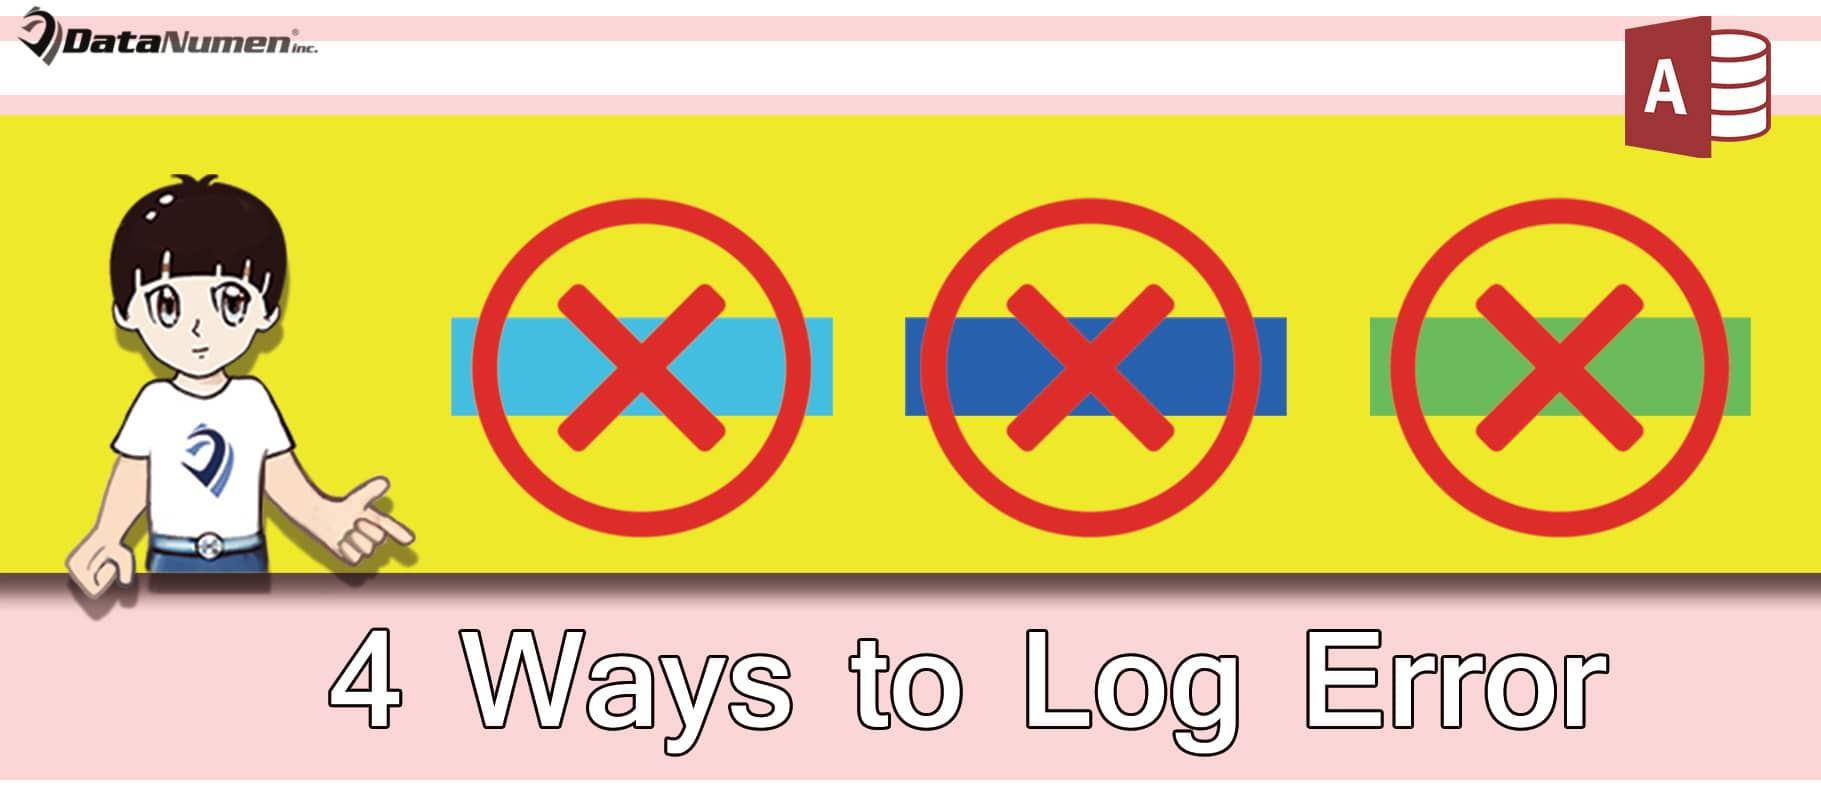 4 Ways To Log Error